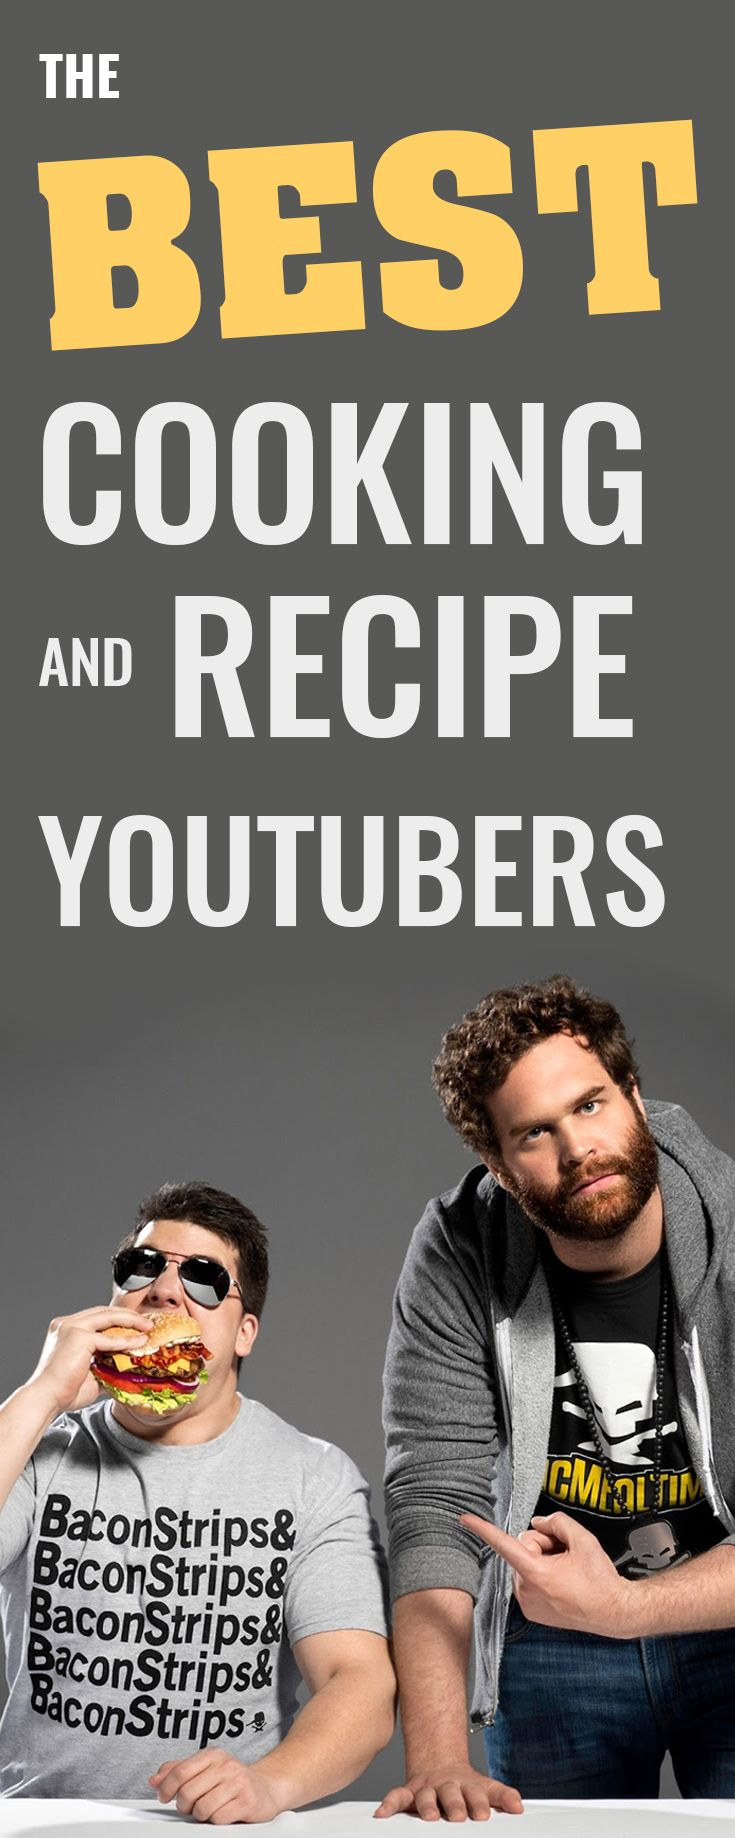 When ranking the best cooking YouTubers, Gordon Ramsay and Jamie Oliver are definitely in the top ten. These two great chefs teach holiday recipes, knife skills, and basic cooking tips. Other good YouTube cooking channels include Epic Meal Time, Food Wishes, Binging with Babish, You Suck at Cooking, and Laura in the Kitchen.